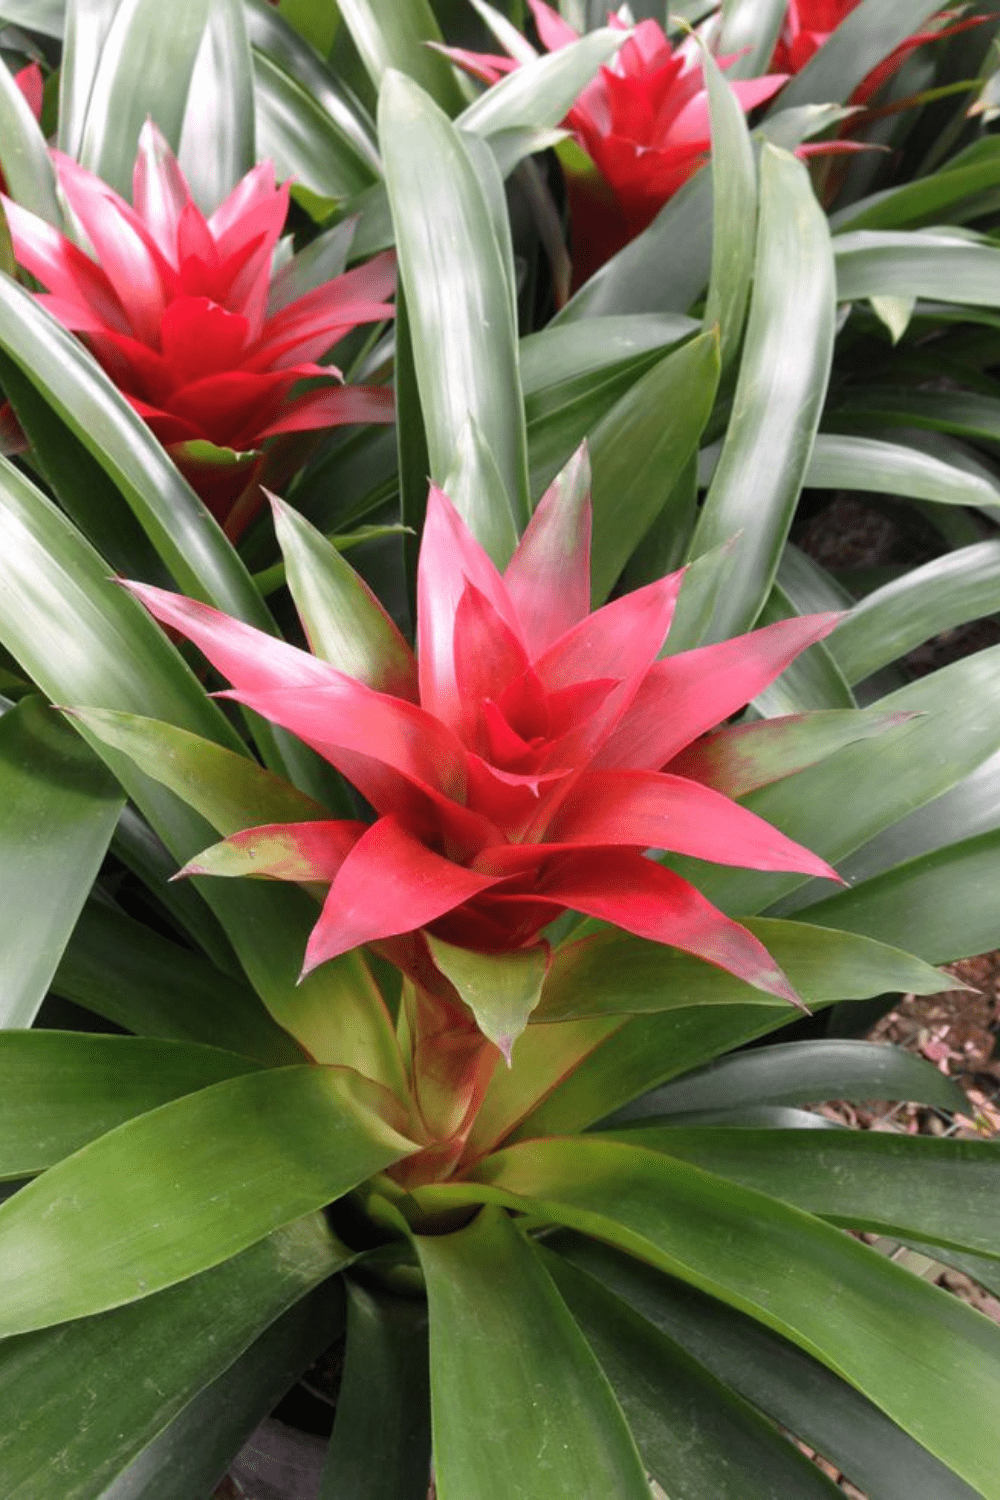 How to Care for Your Bromeliad Plant